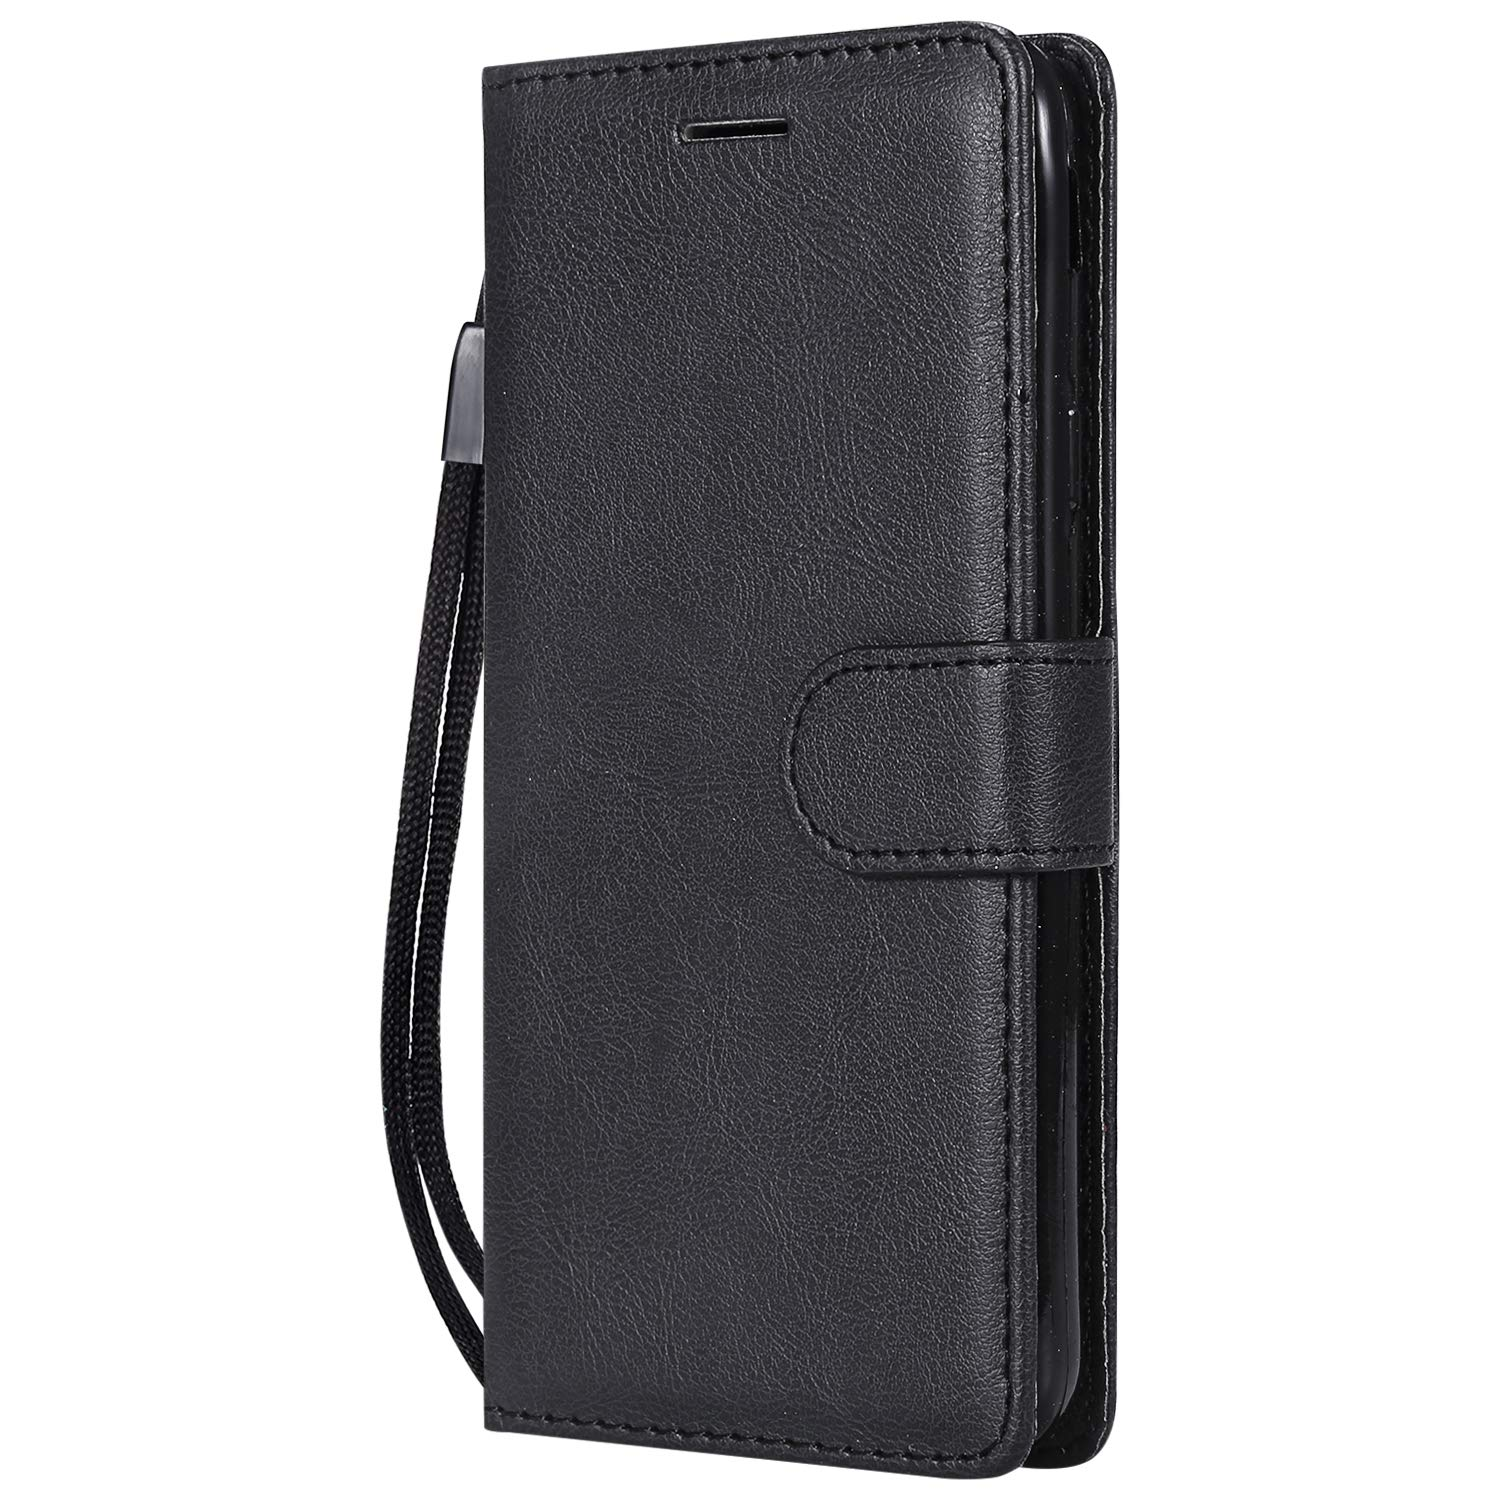 Galaxy S8 Case, AIIYG DS Classic Pure Color [Kickstand Feature] Flip Folio Leather Wallet Case with ID and Credit Card Pockets for Samsung Galaxy S8 Black